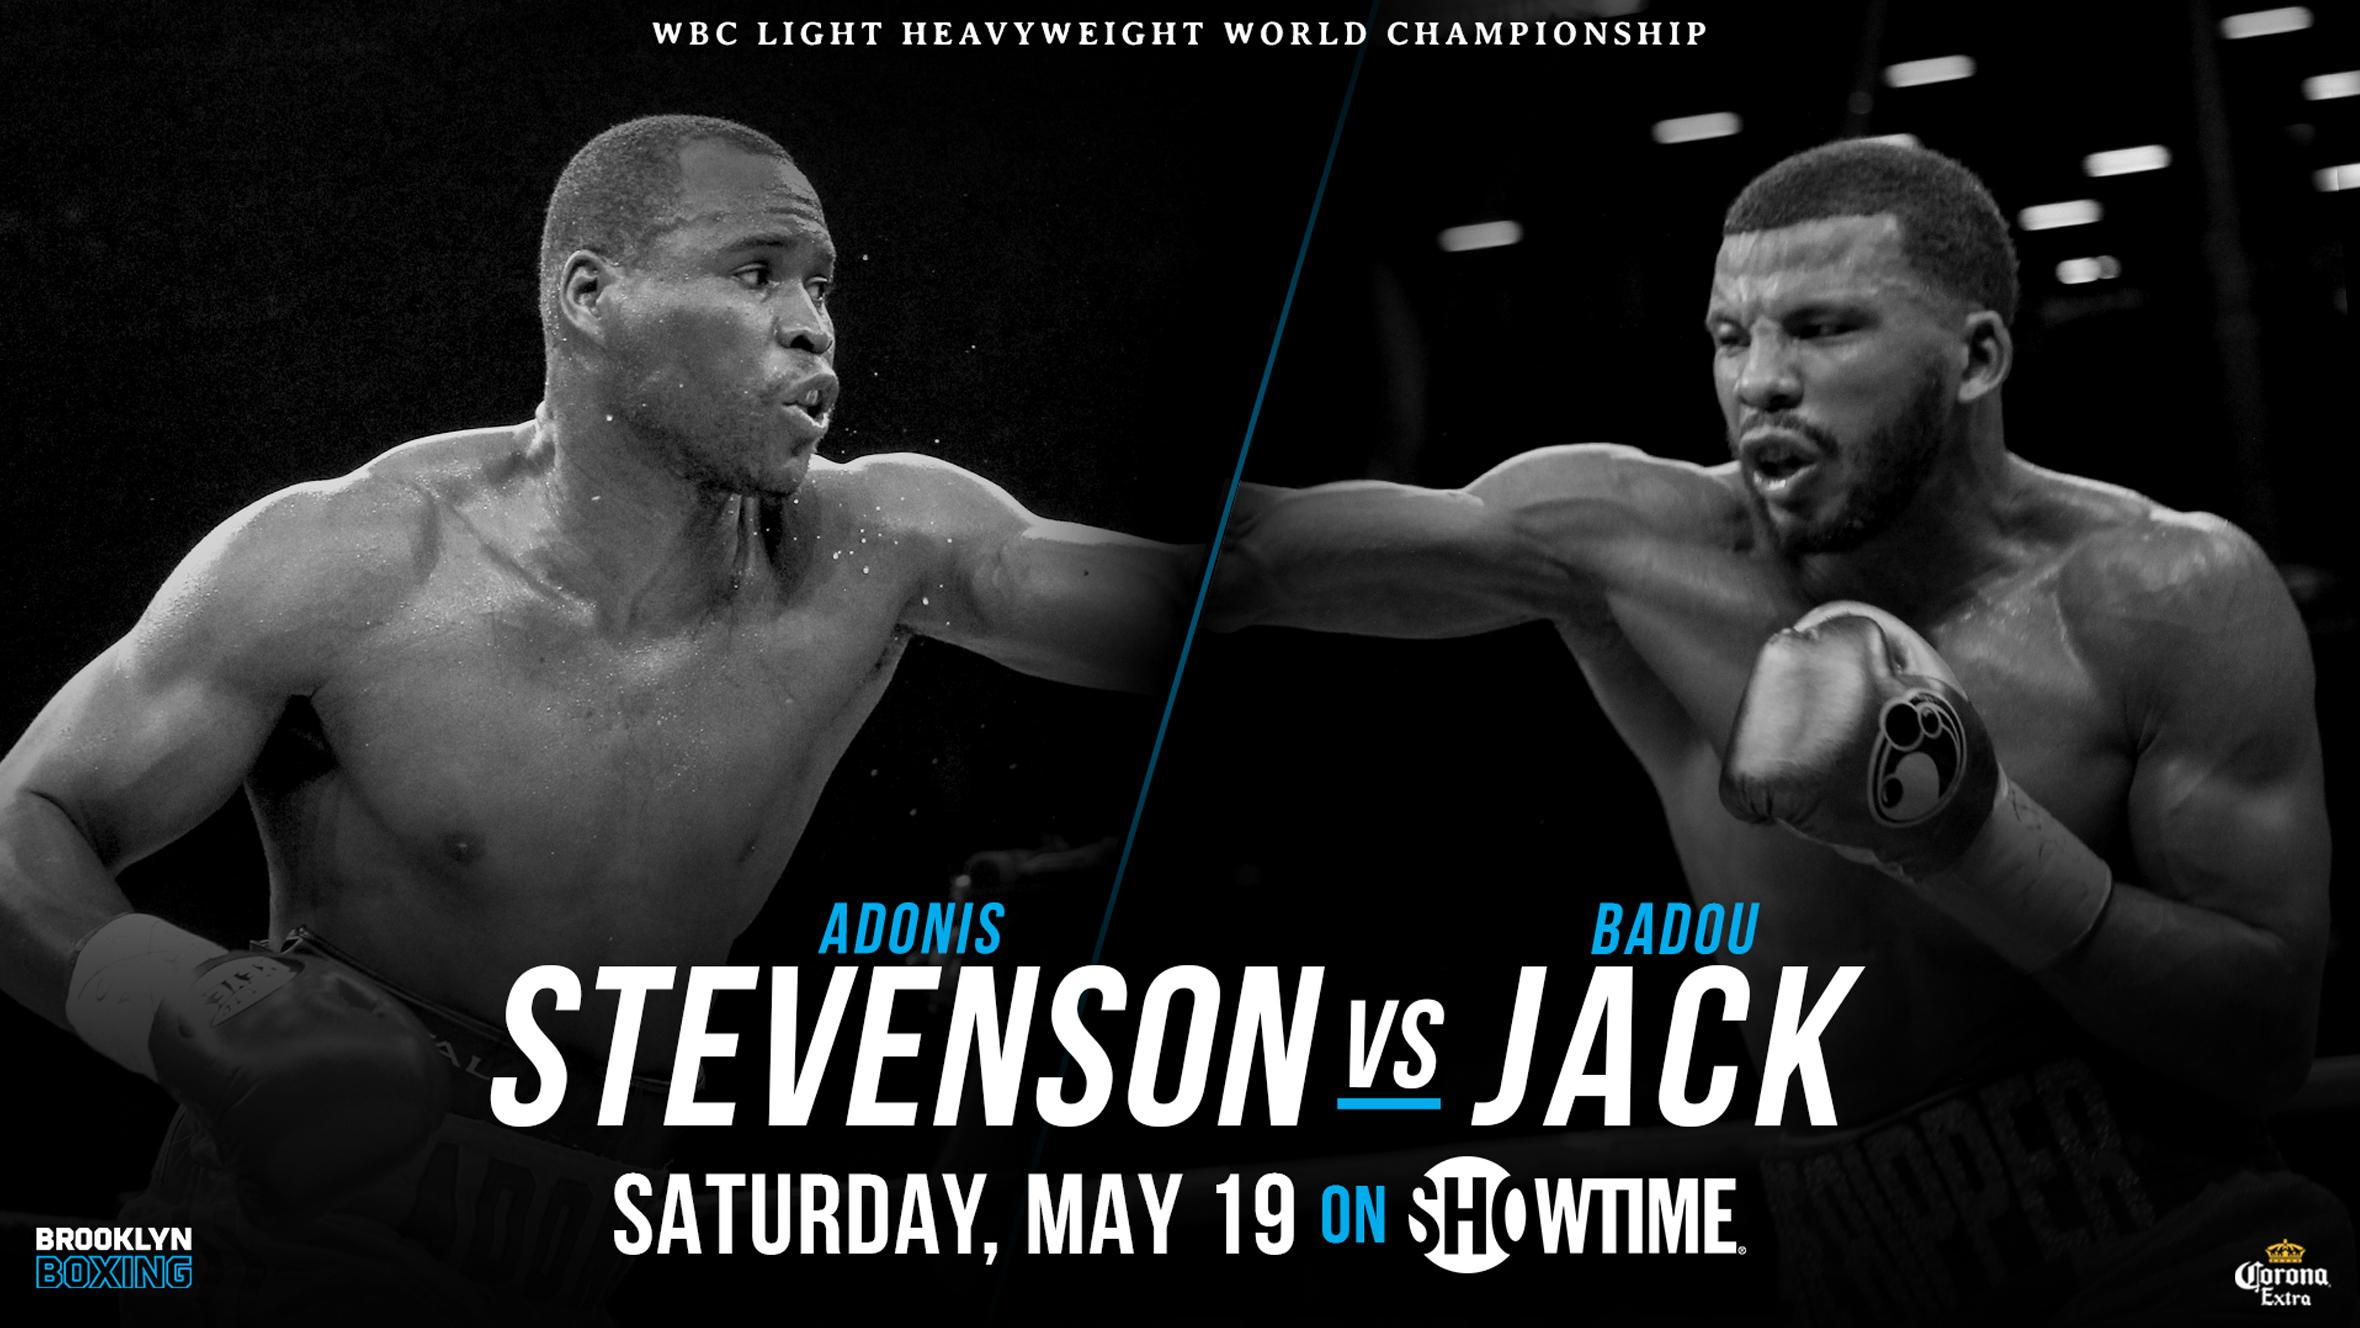 Stevenson vs Jack fight poster